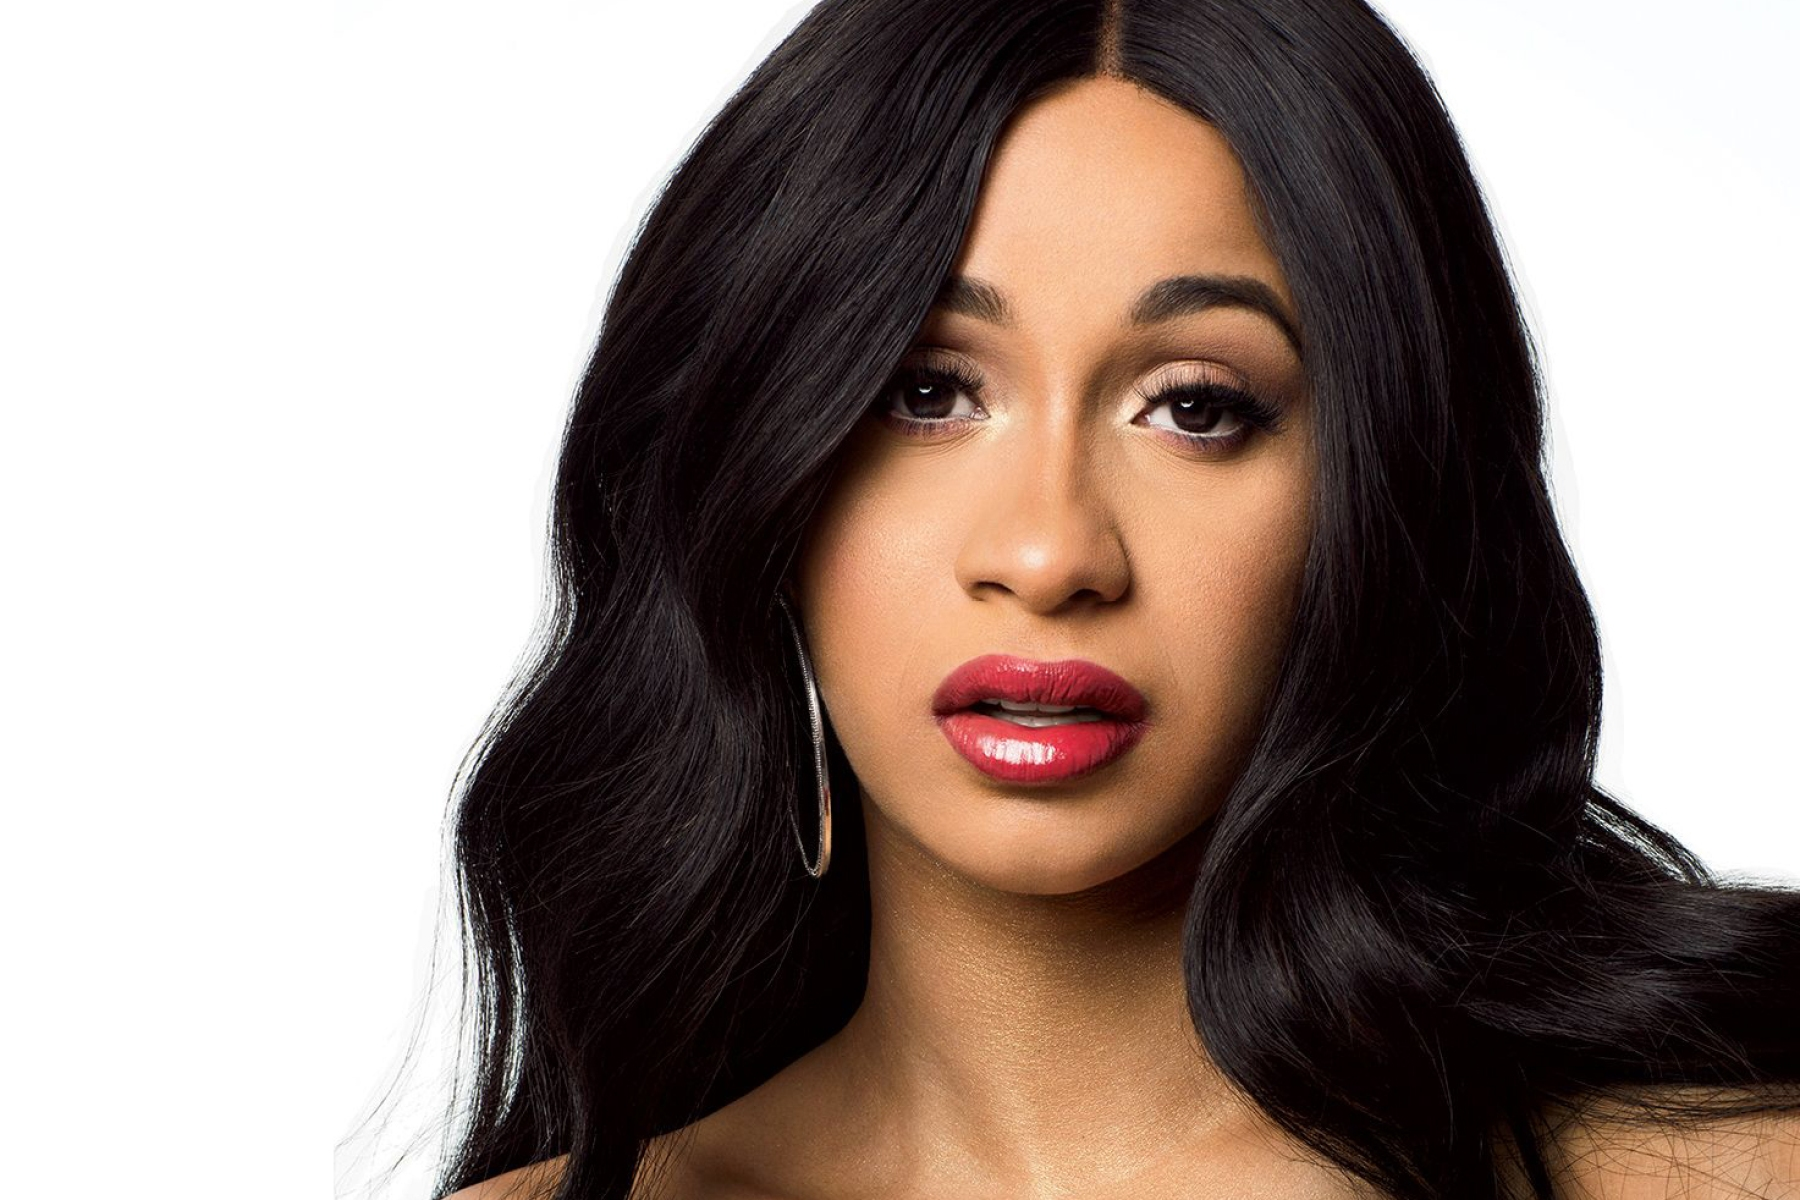 Cardi B Announces Debut Album 'Invasion of Privacy' Out ...